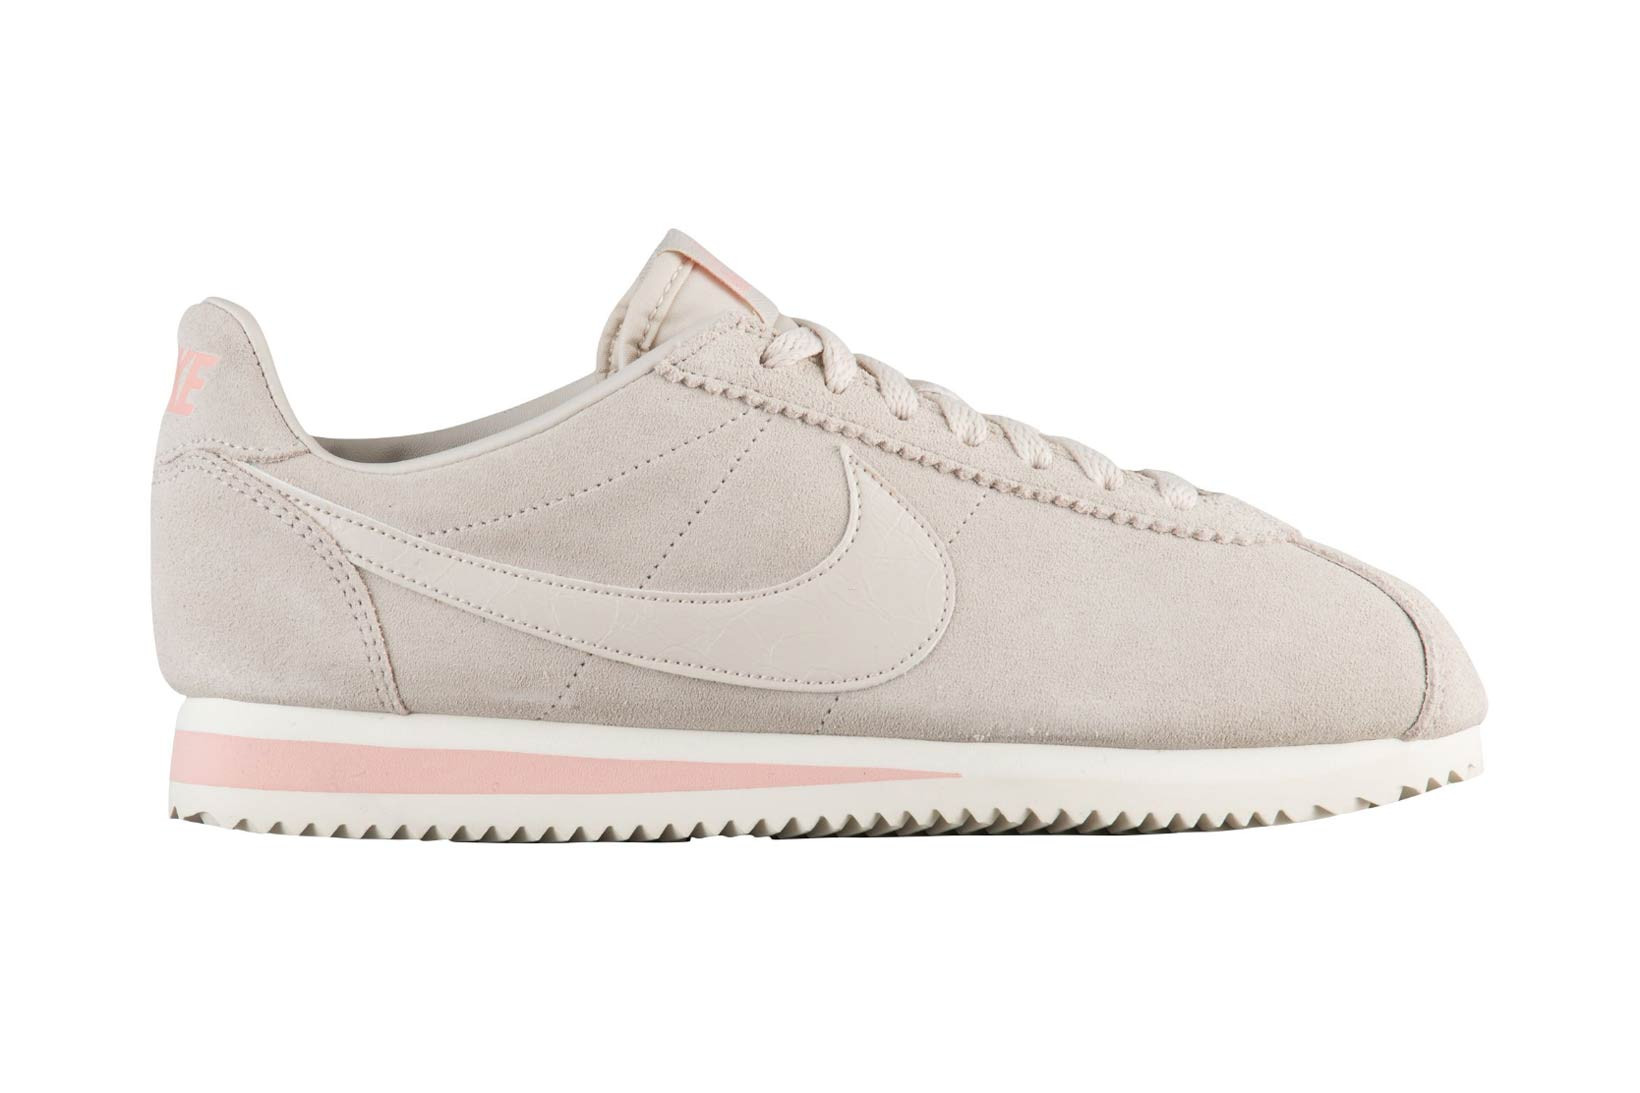 Classic Cortez in Nude and Pink